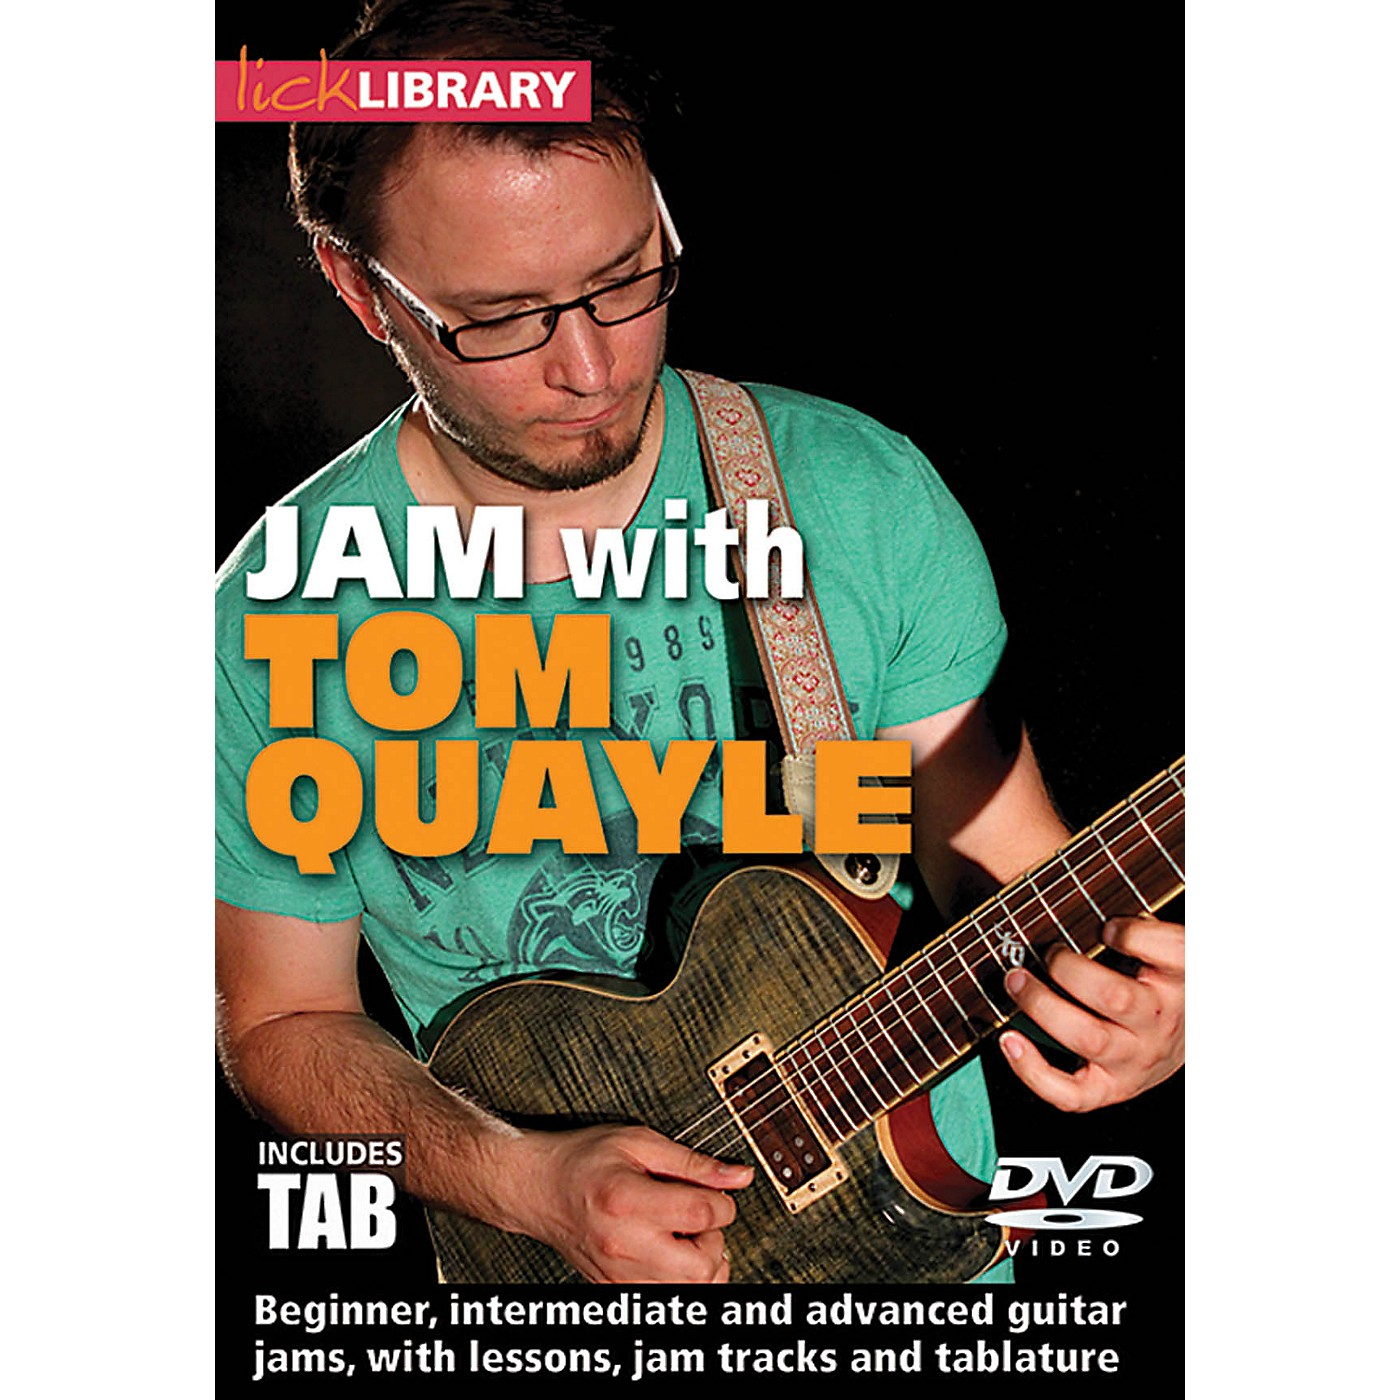 Licklibrary Jam with Tom Quayle Lick Library Series DVD Performed by Tom Quayle thumbnail